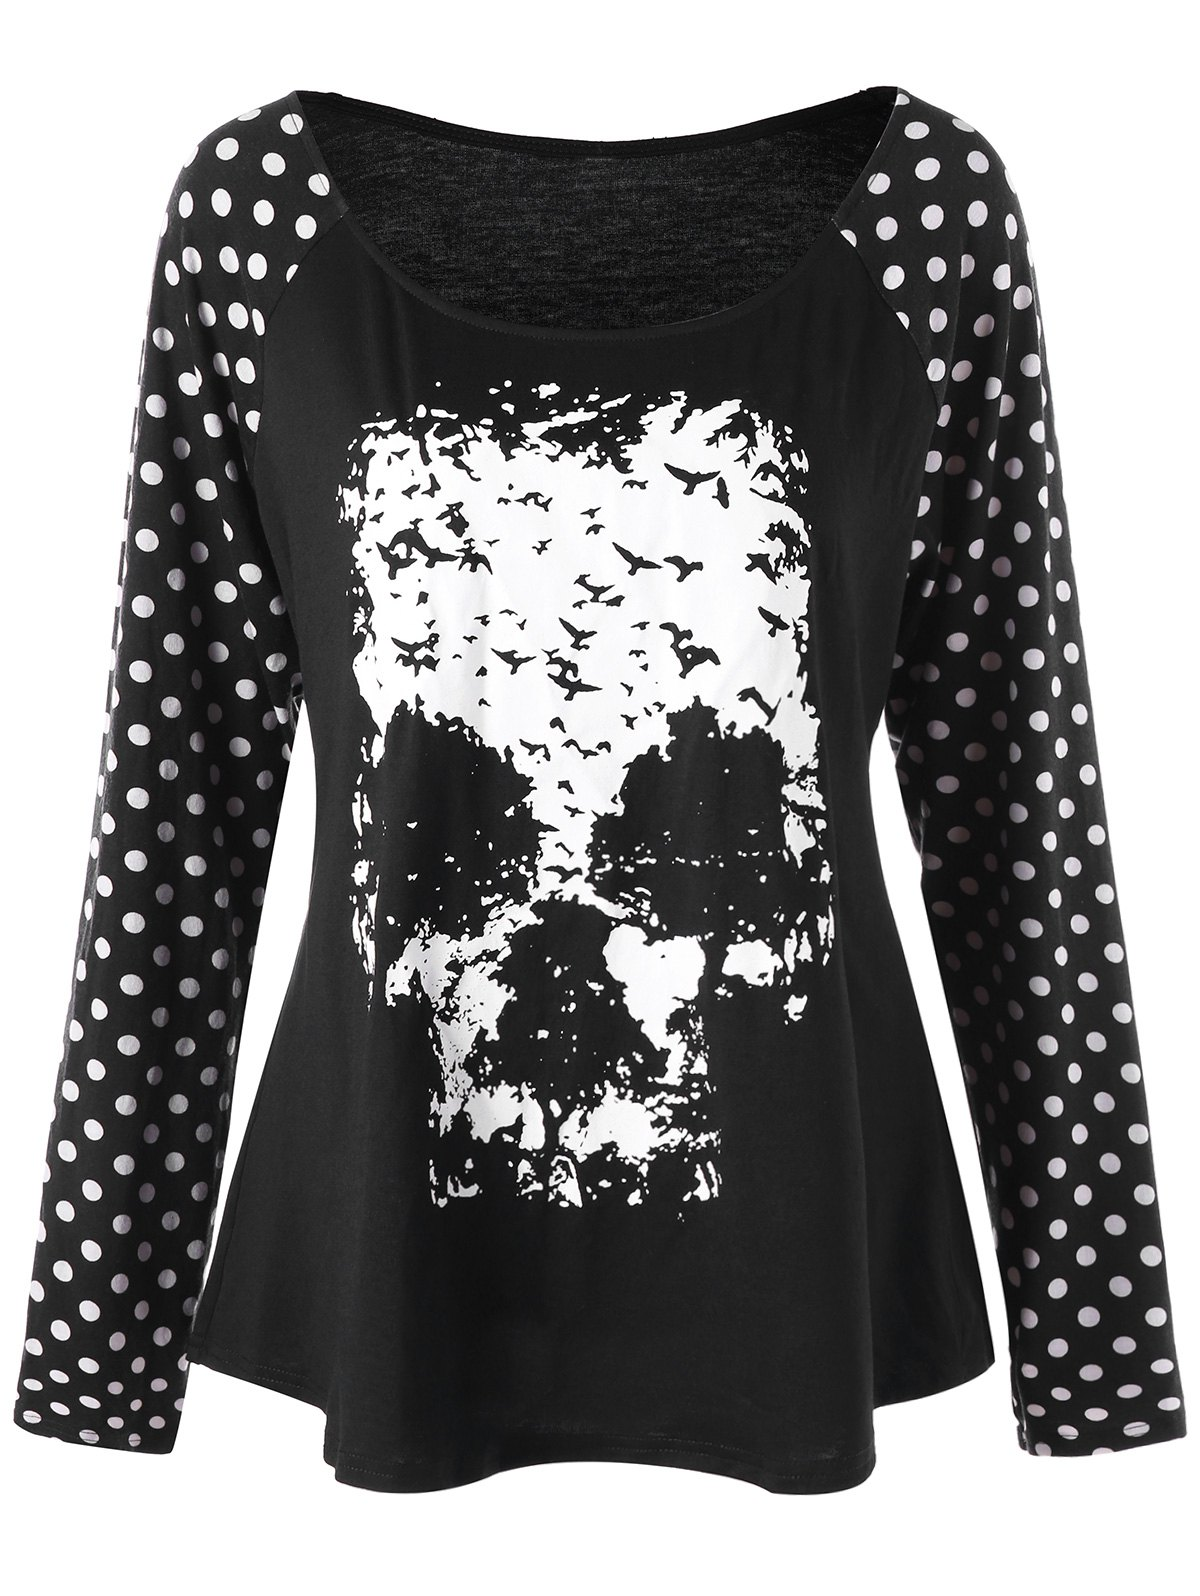 Plus Size Skull Polka Dot T-shirtWOMEN<br><br>Size: 2XL; Color: BLACK; Material: Polyester,Spandex; Shirt Length: Regular; Sleeve Length: Full; Collar: Scoop Neck; Style: Casual; Season: Fall,Spring; Pattern Type: Polka Dot,Skulls; Weight: 0.2900kg; Package Contents: 1 x T-shirt;